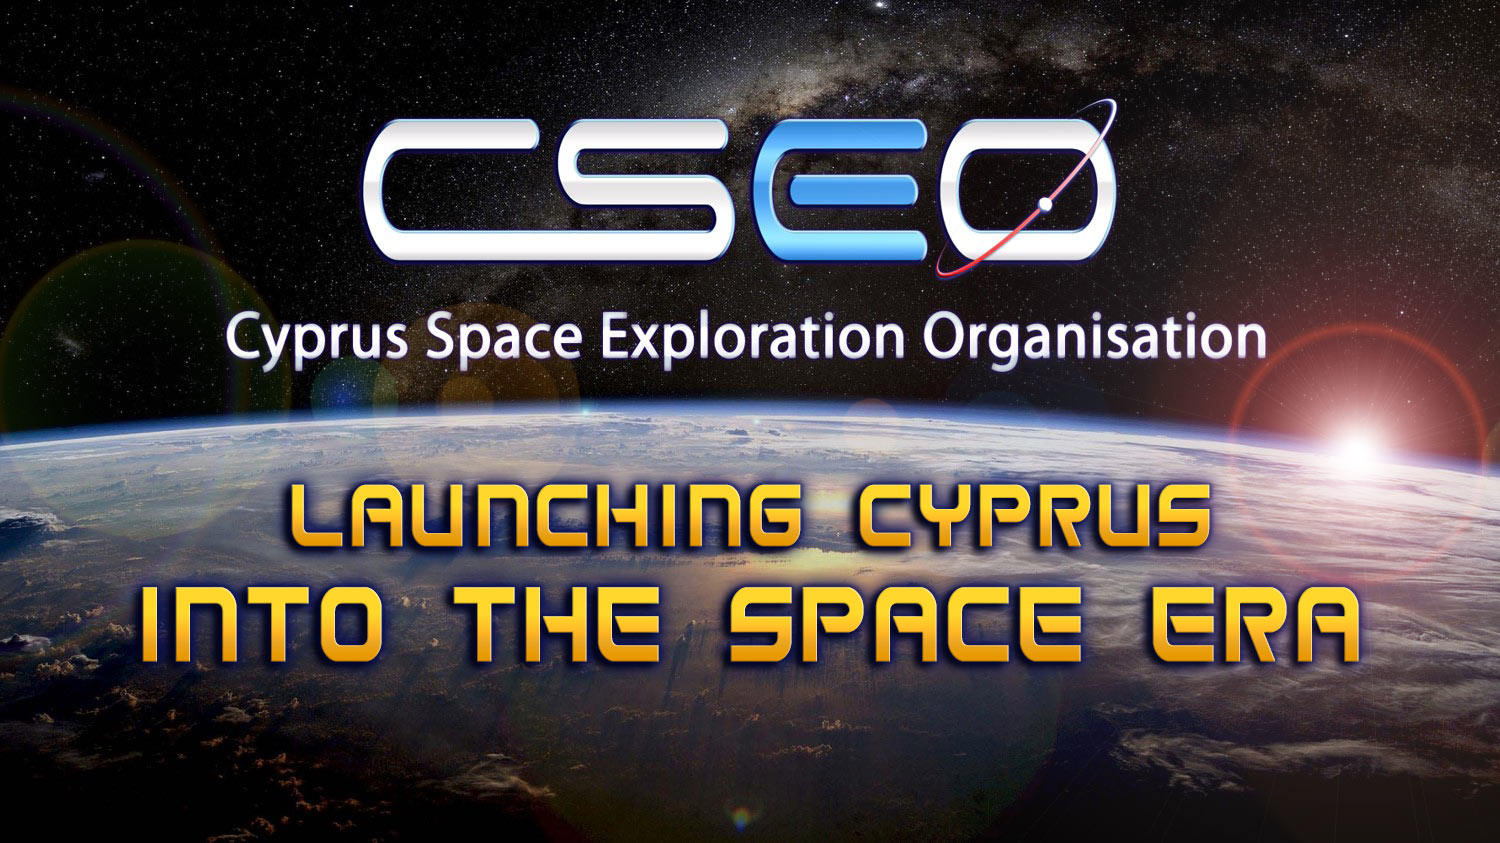 The Cyprus Space Exploration Organisation